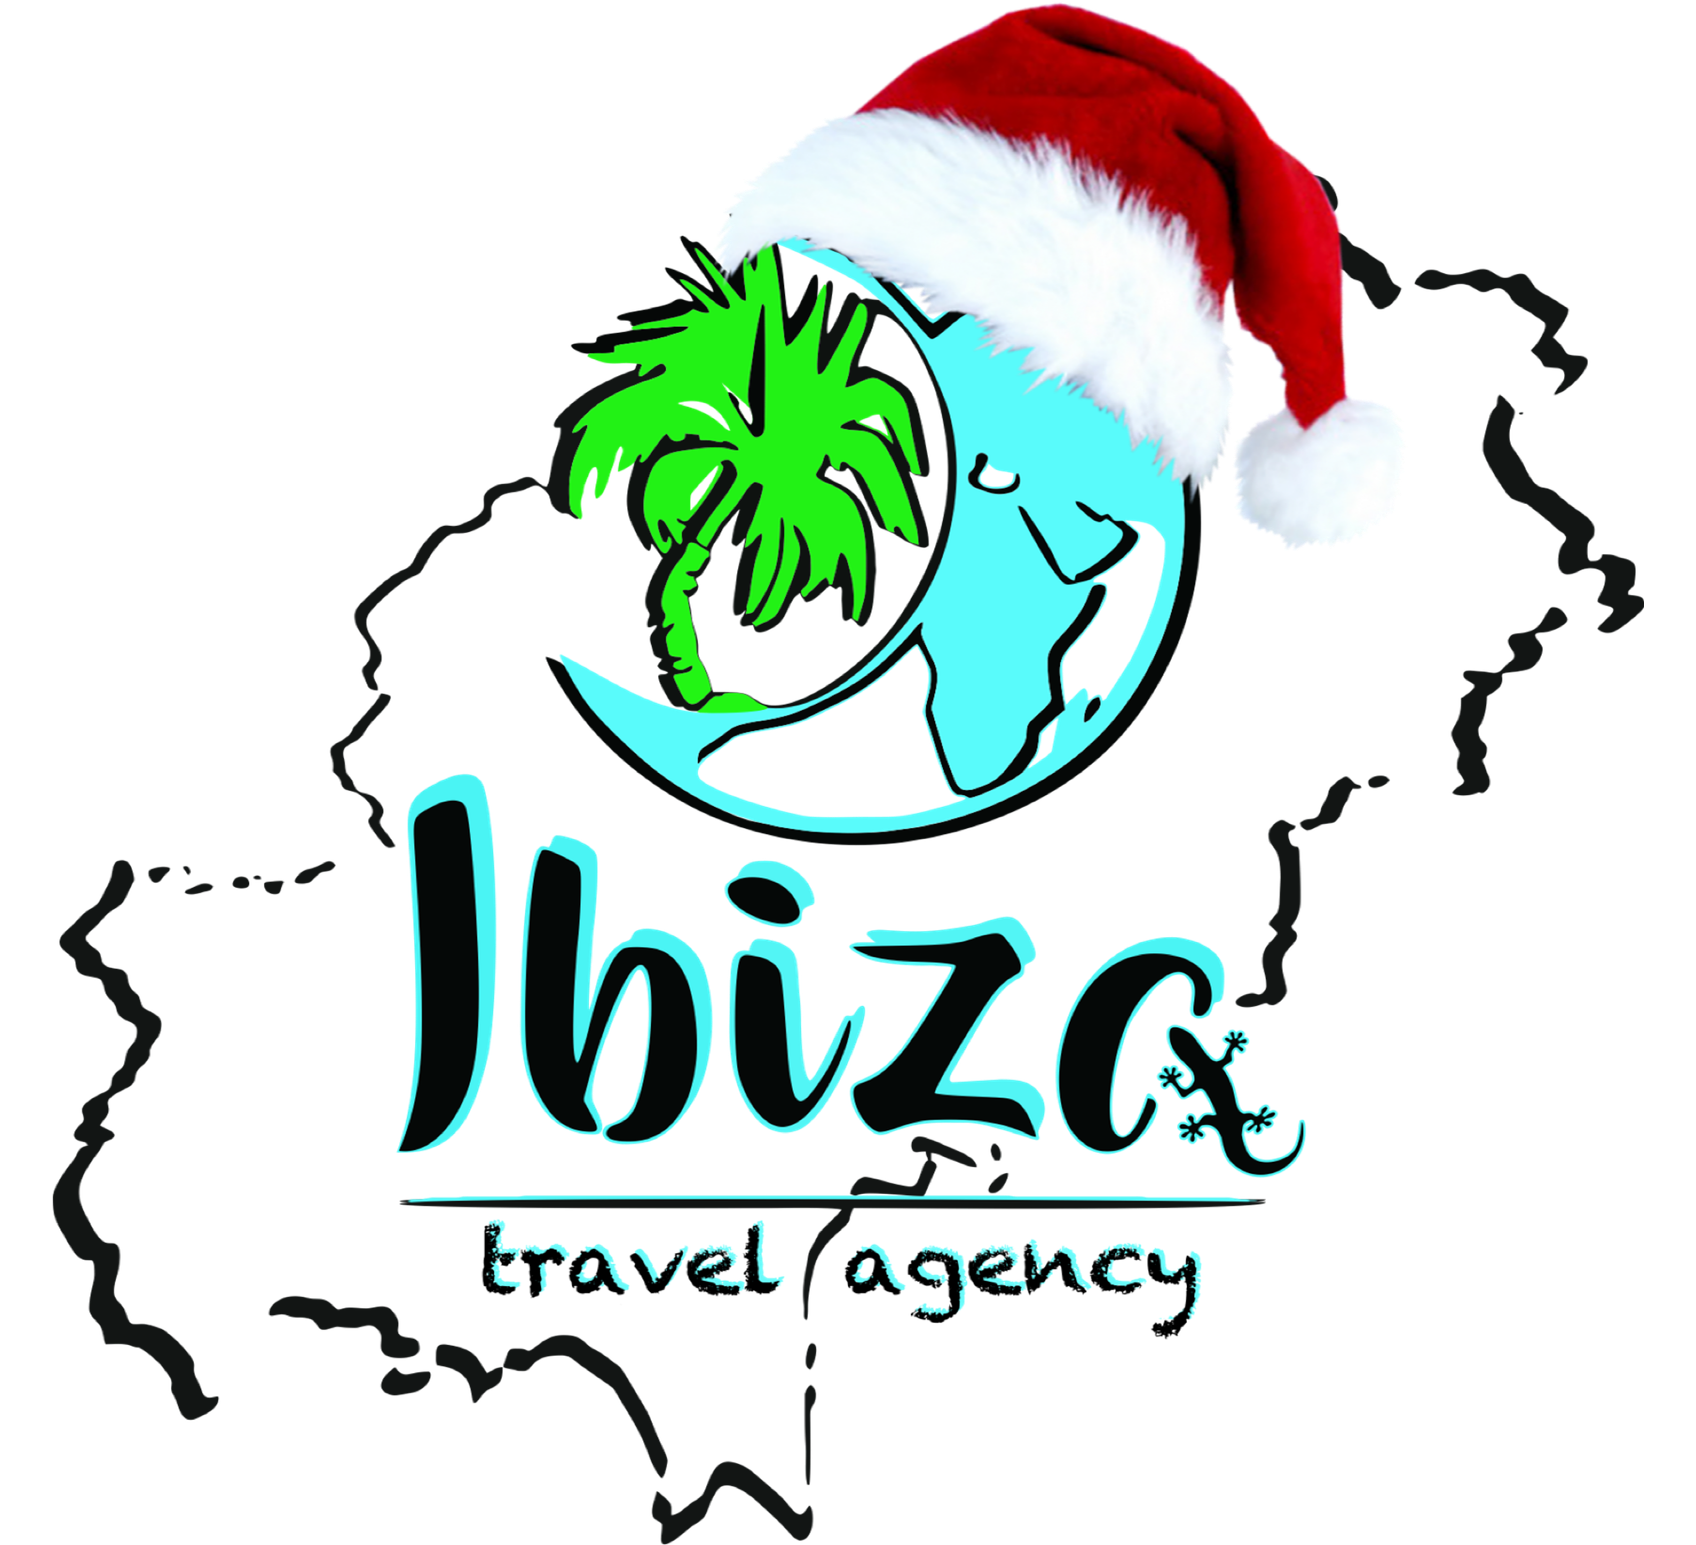 Ibiza. Travel Agency